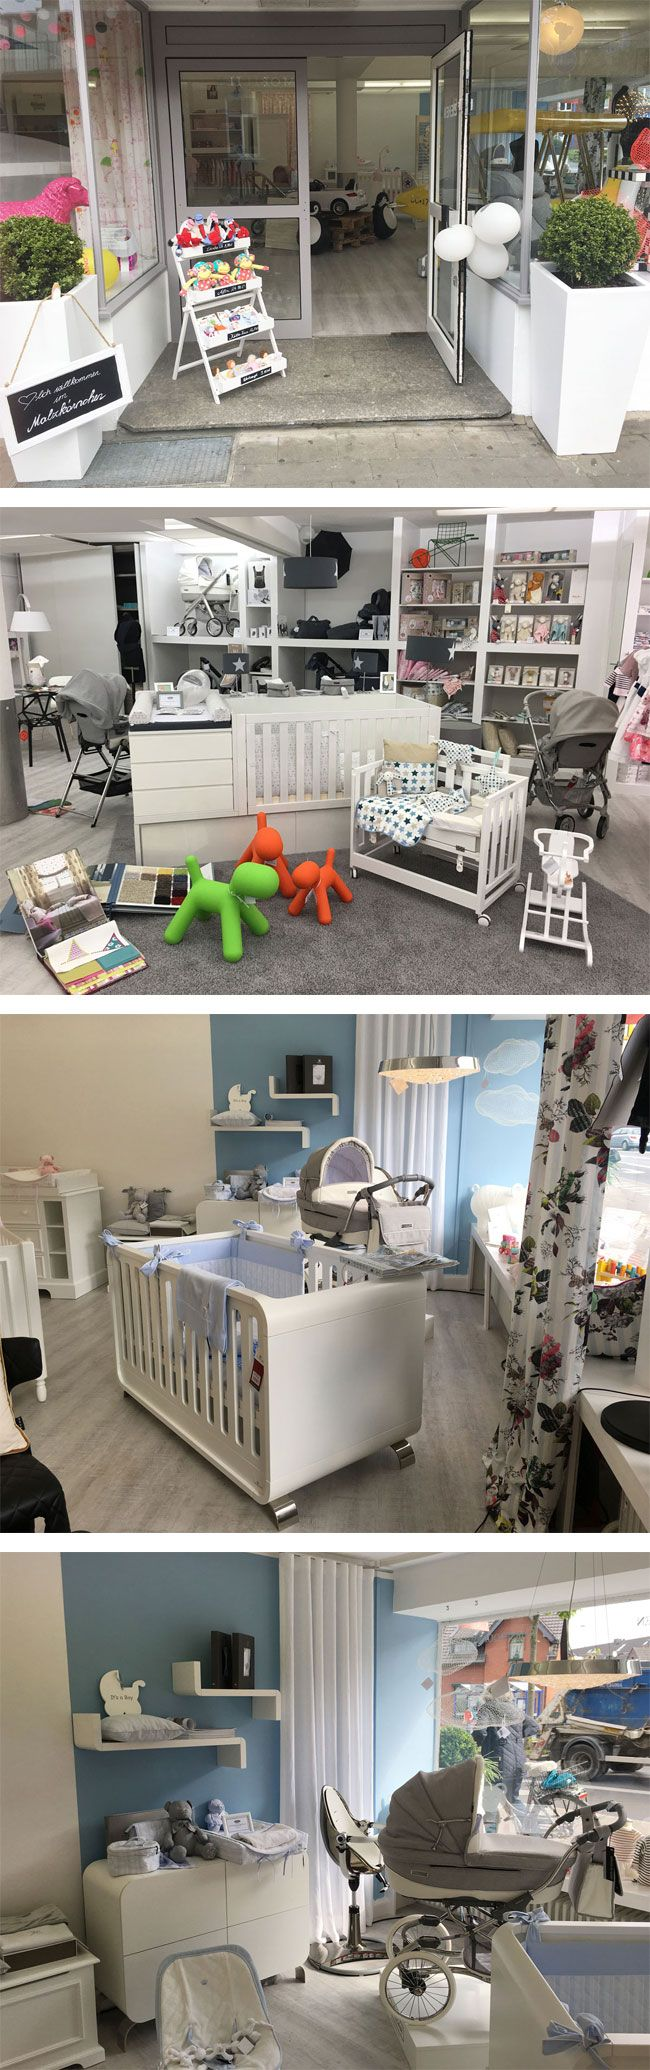 42 Best Espacios Alondra Images On Pinterest Spaces Baby Rooms  # Muebles Lozano Petrer